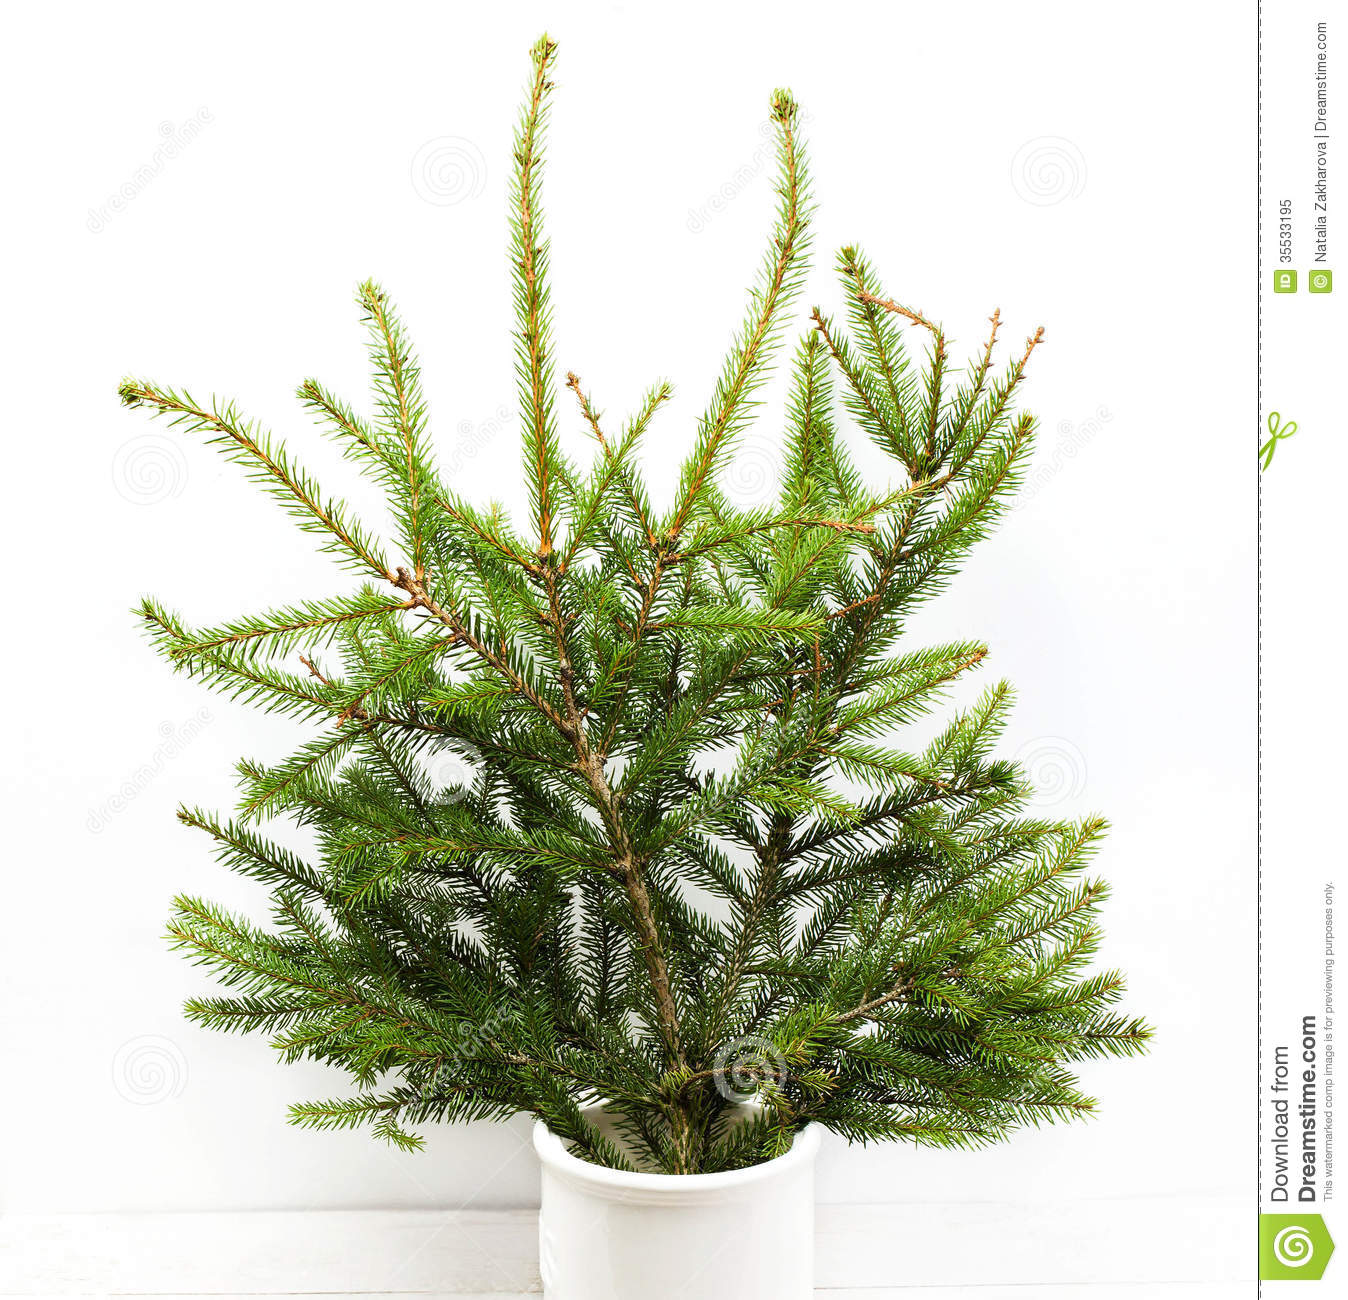 Home Christmas Tree Branches, Stock Image - Image of isolated, copy: 35533195